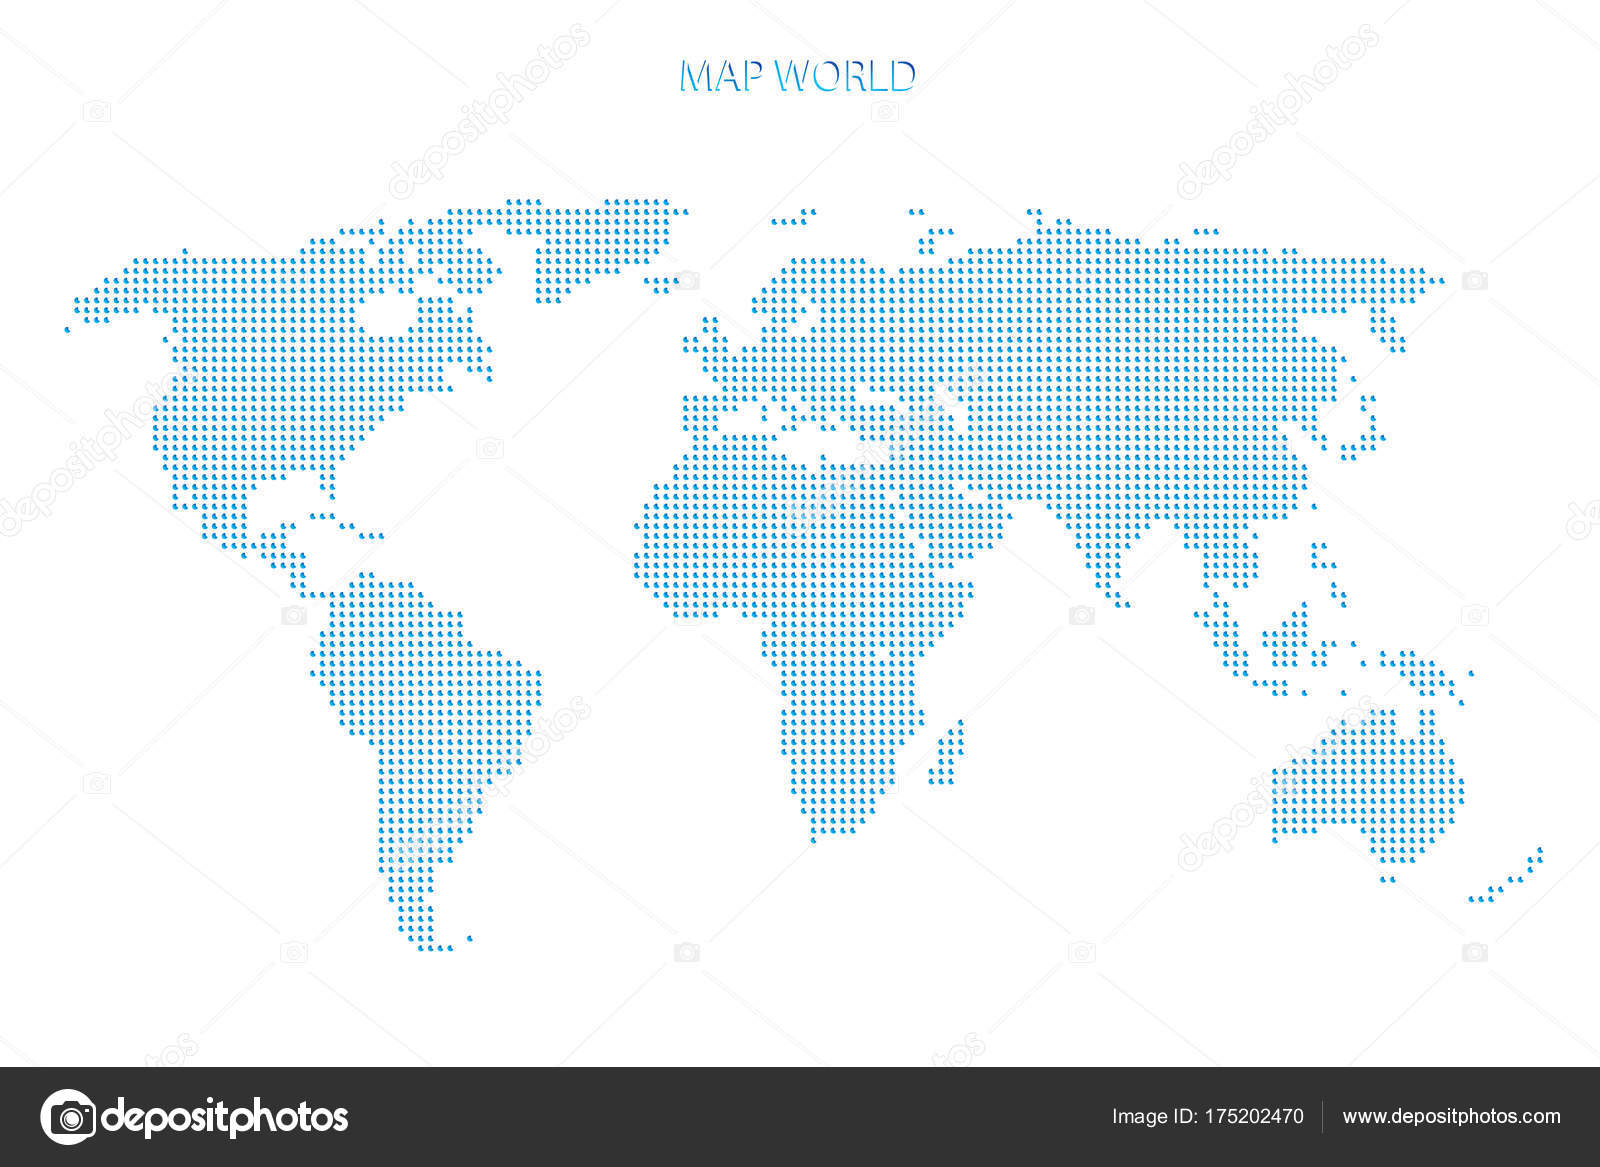 Dotted world map blue world map silhoeutte isolated white world dotted world map blue world map silhoeutte isolated on white world map of blue dots background vector illustration template concept icon social media gumiabroncs Gallery